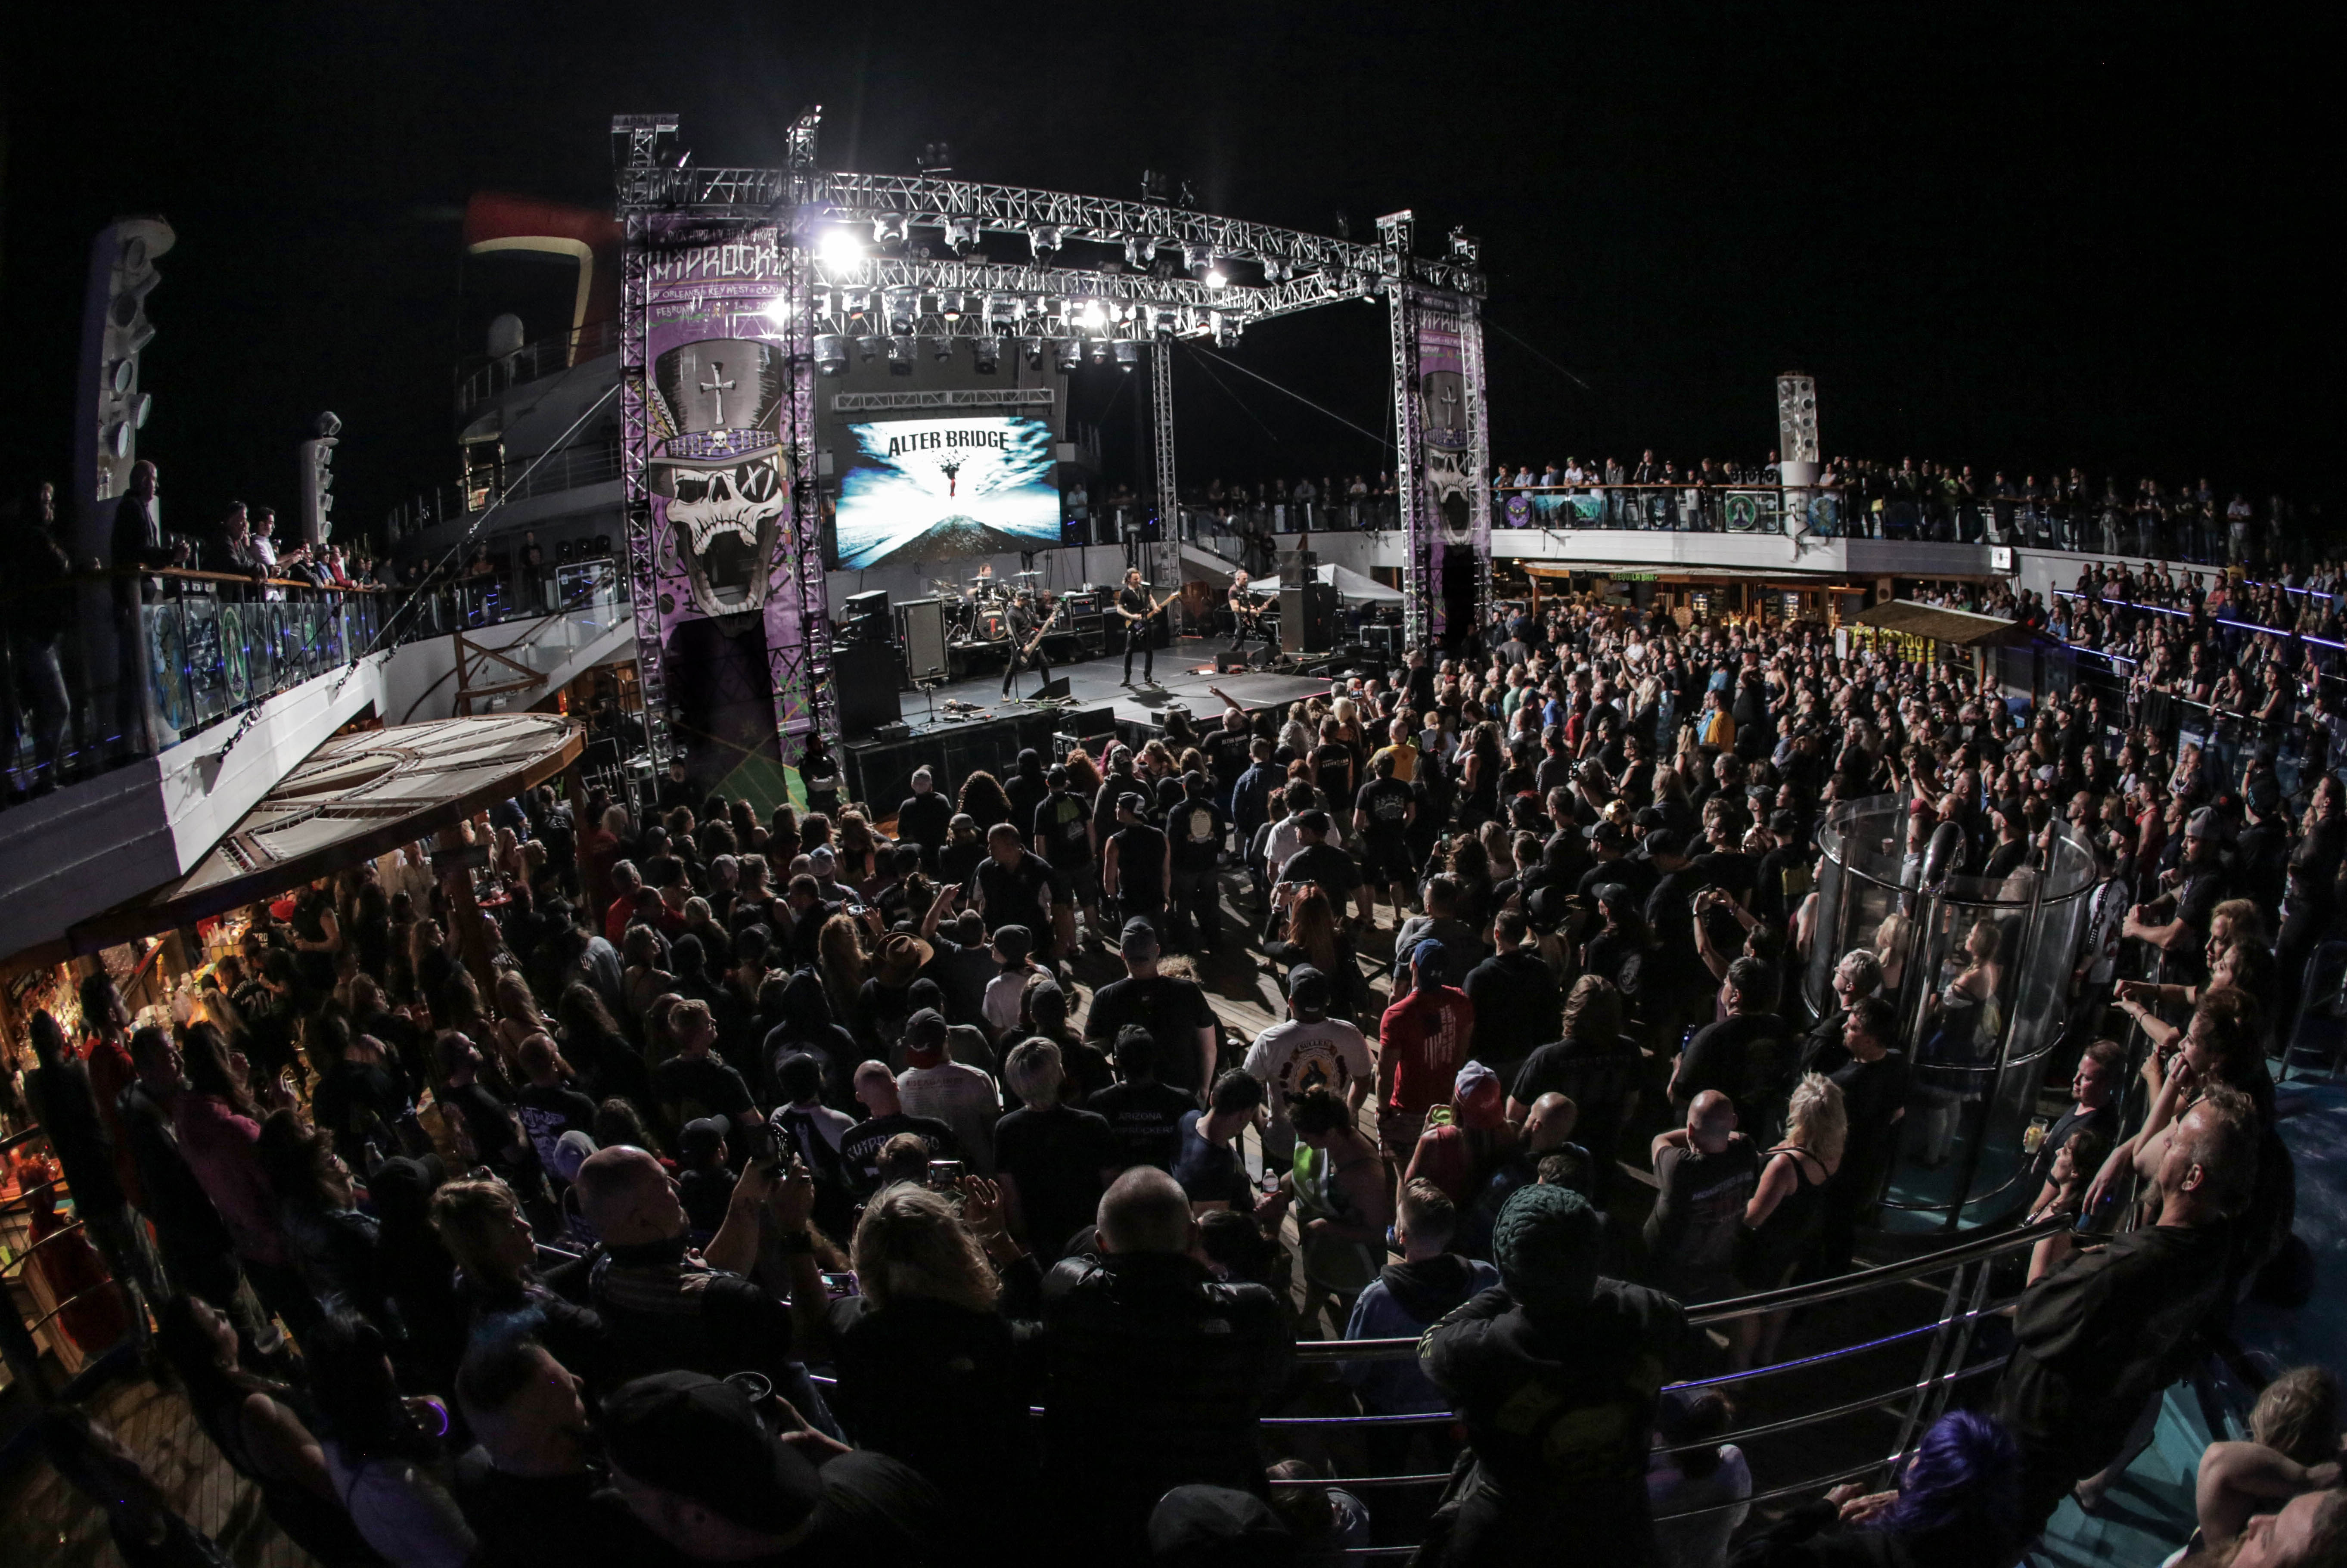 Lido Deck Stage